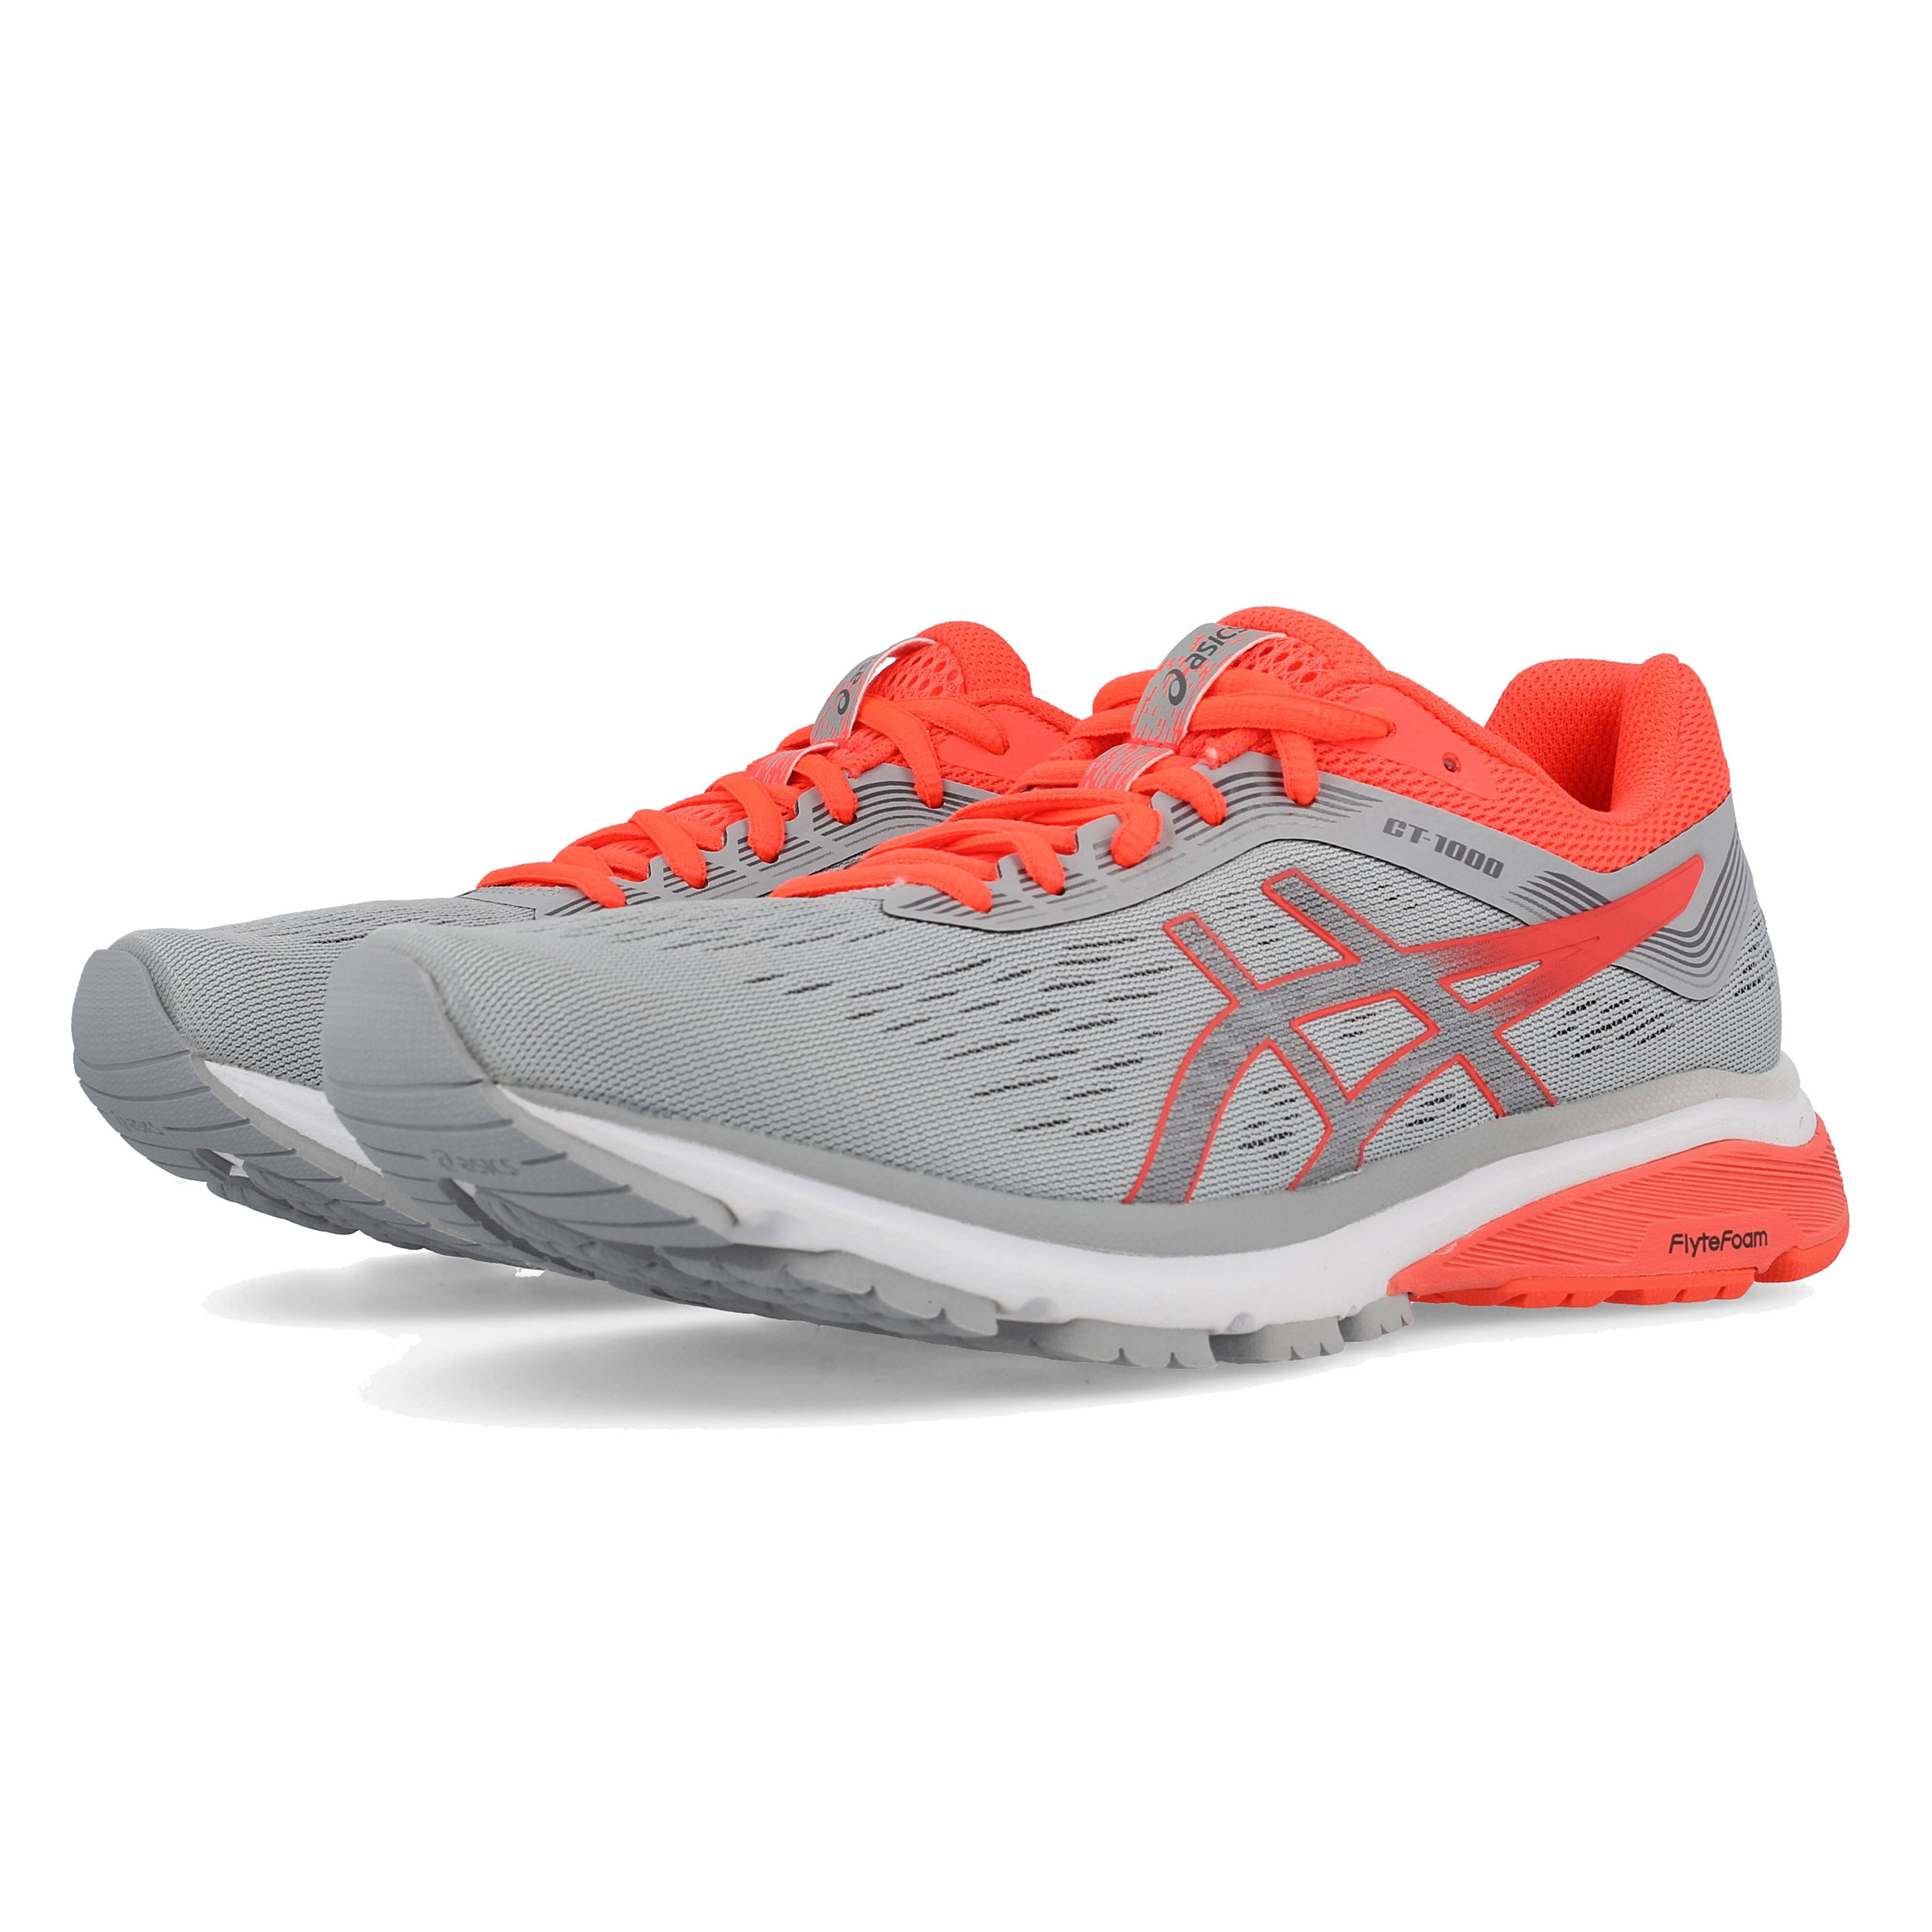 73fd12f7 Asics Mujer Gt-1000 7 Correr Zapatos Zapatillas Gris Deporte Transpirable